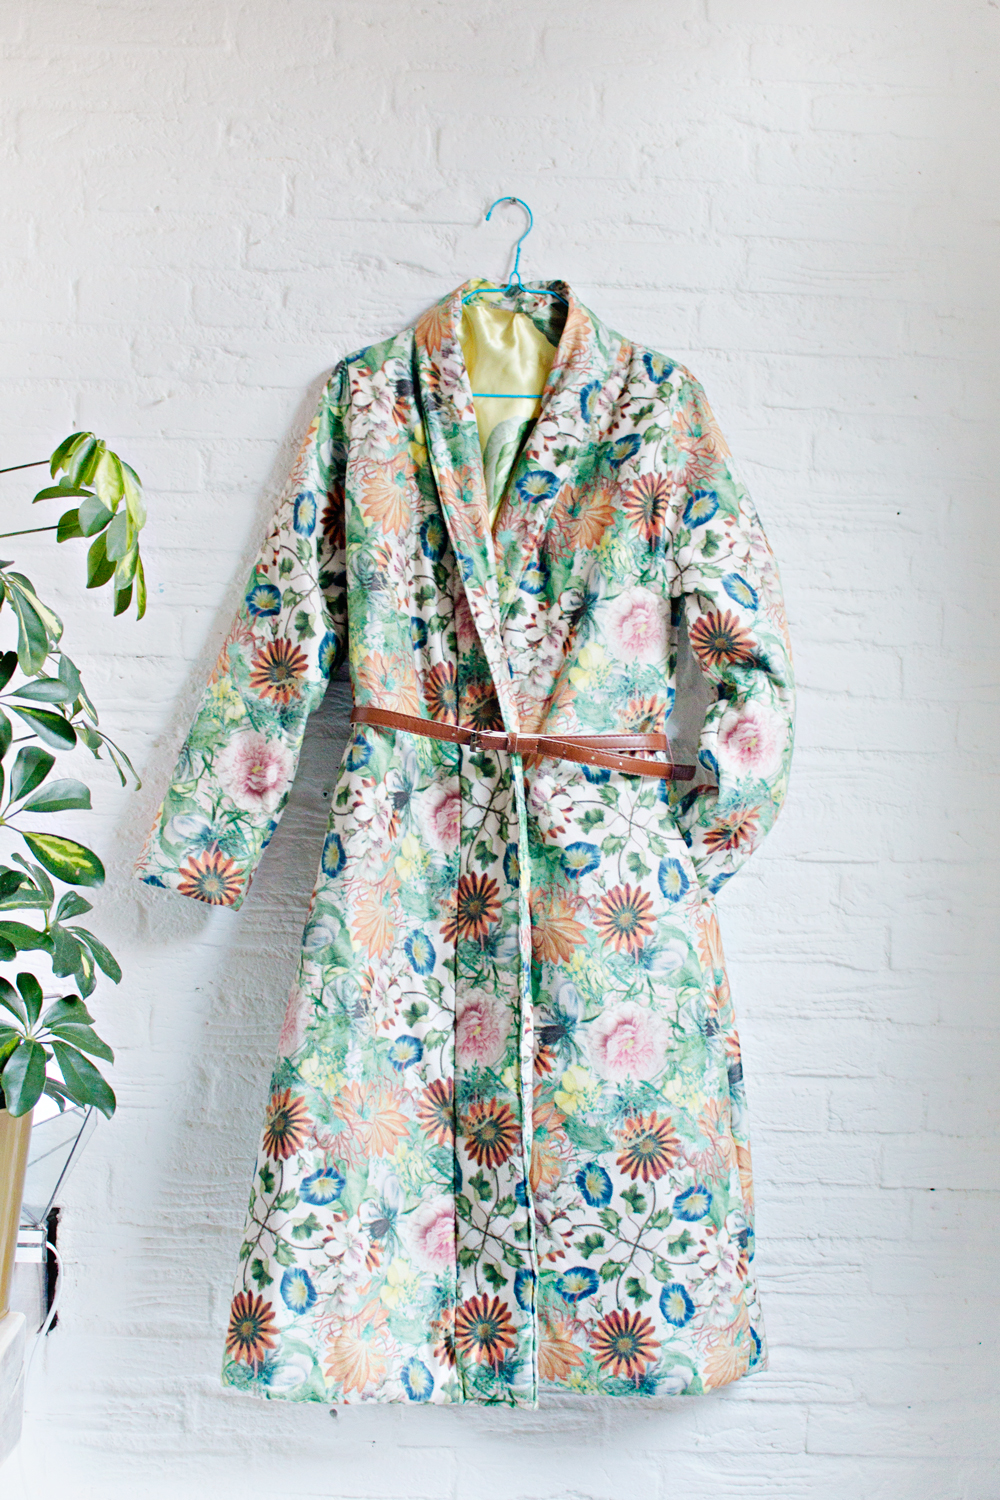 SEWING DIY | How to Make a Robe Coat in 30 Steps Without a Sewing Pattern